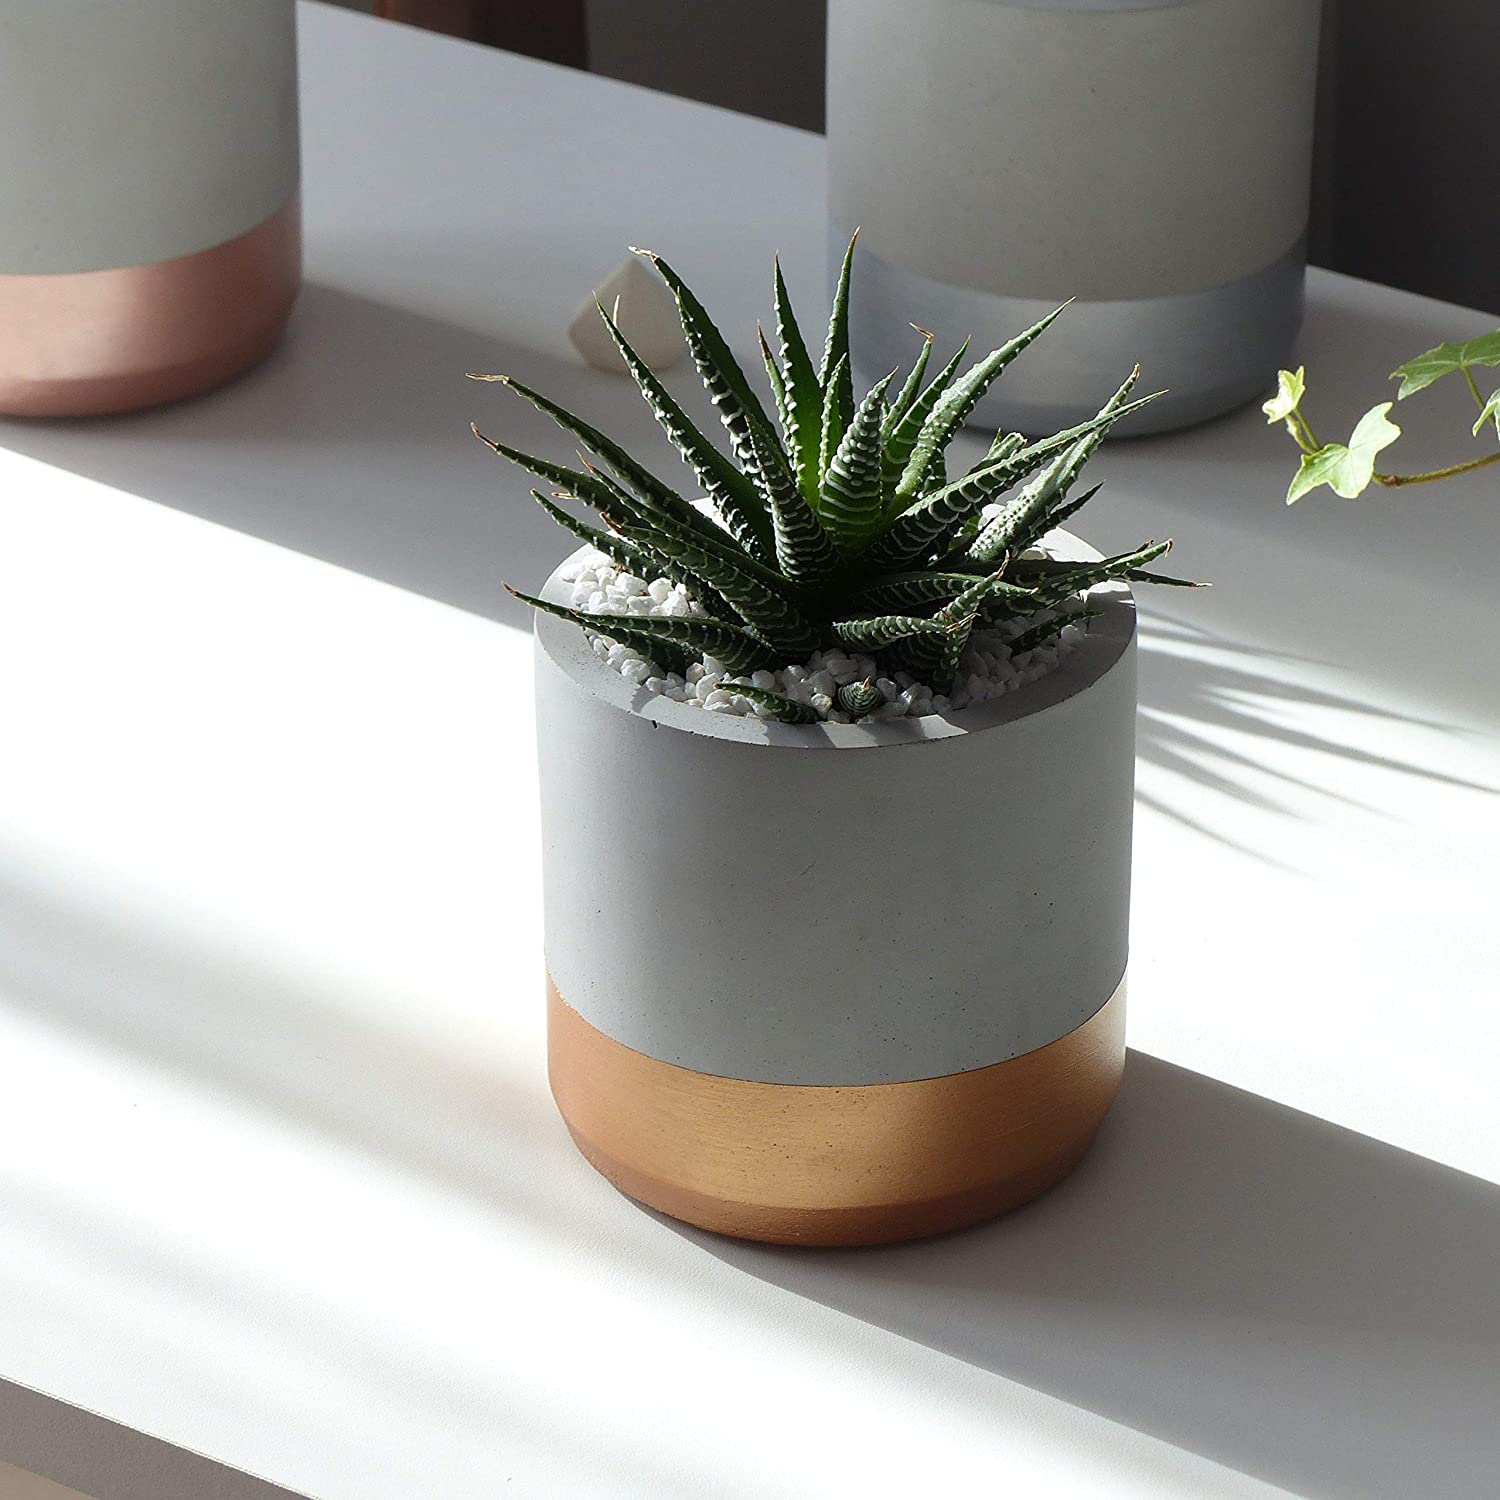 Round Indoor Gray and Copper Cement Flower Pot Hygge Concrete Planter Pot Modern Gardening for Potted Cactus and Succulent Plants Amazon.ca Handmade & Round Indoor Gray and Copper Cement Flower Pot Hygge Concrete ...